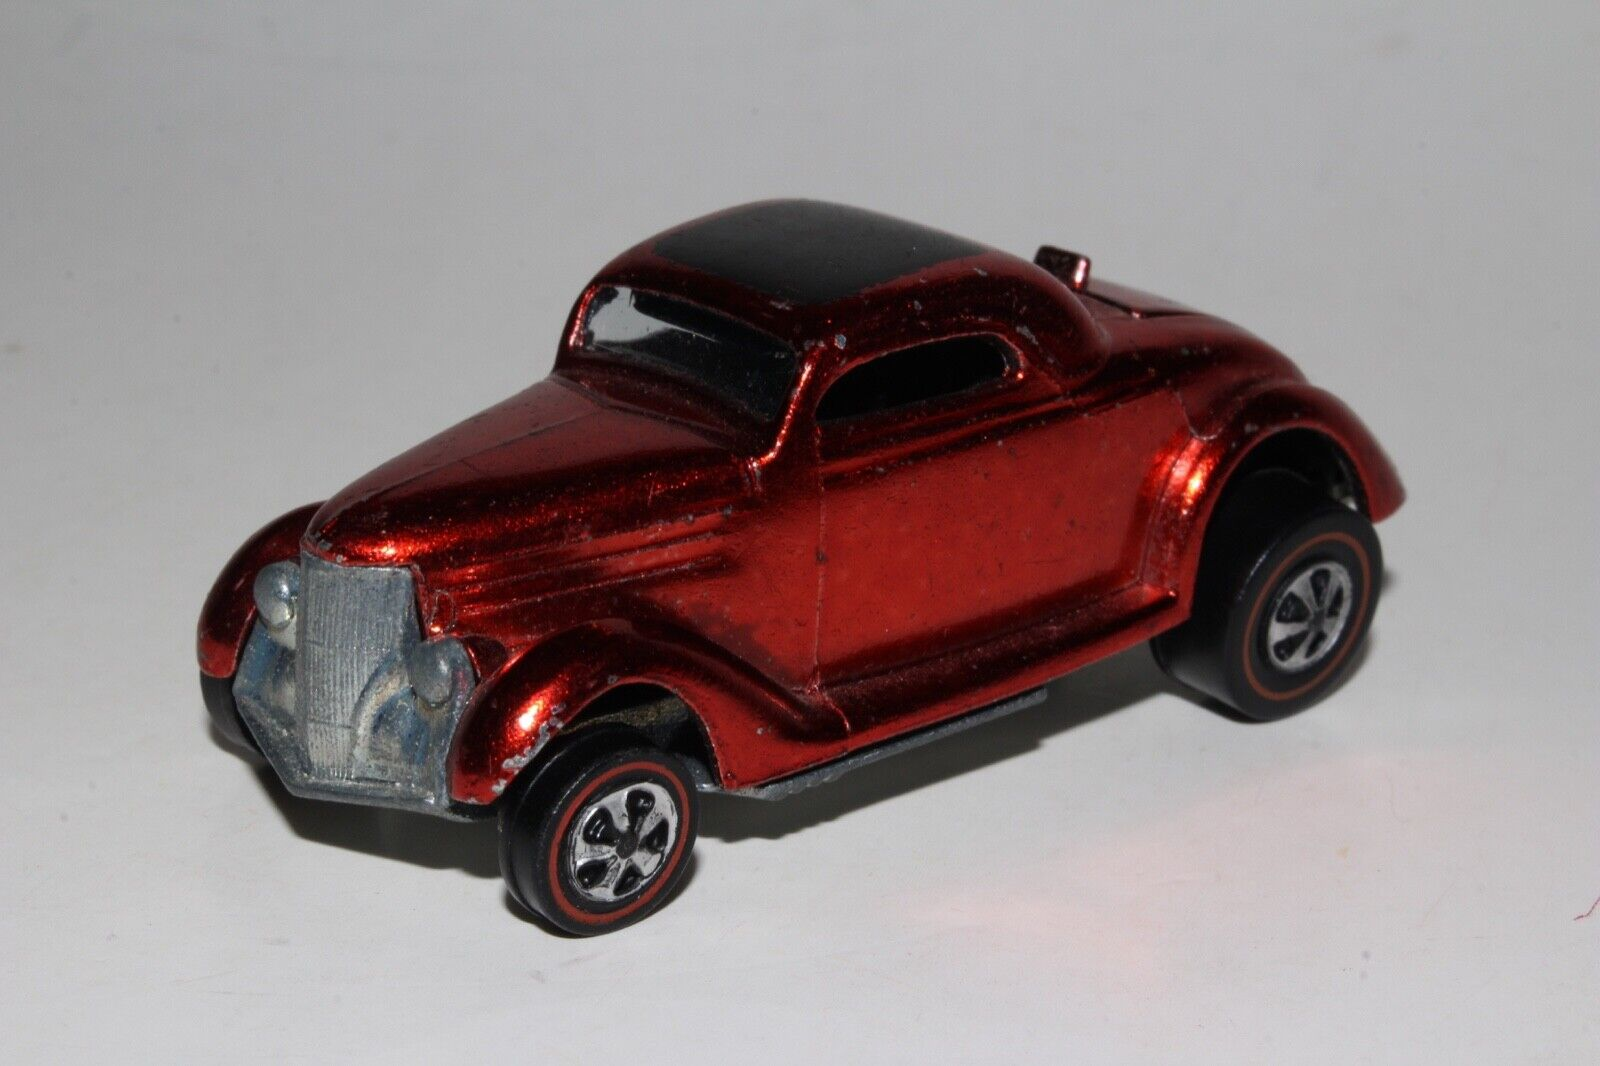 Hot Wheels rojoline Clásico '36 Ford Coupé, Rojo Metálico, Excelente, Original